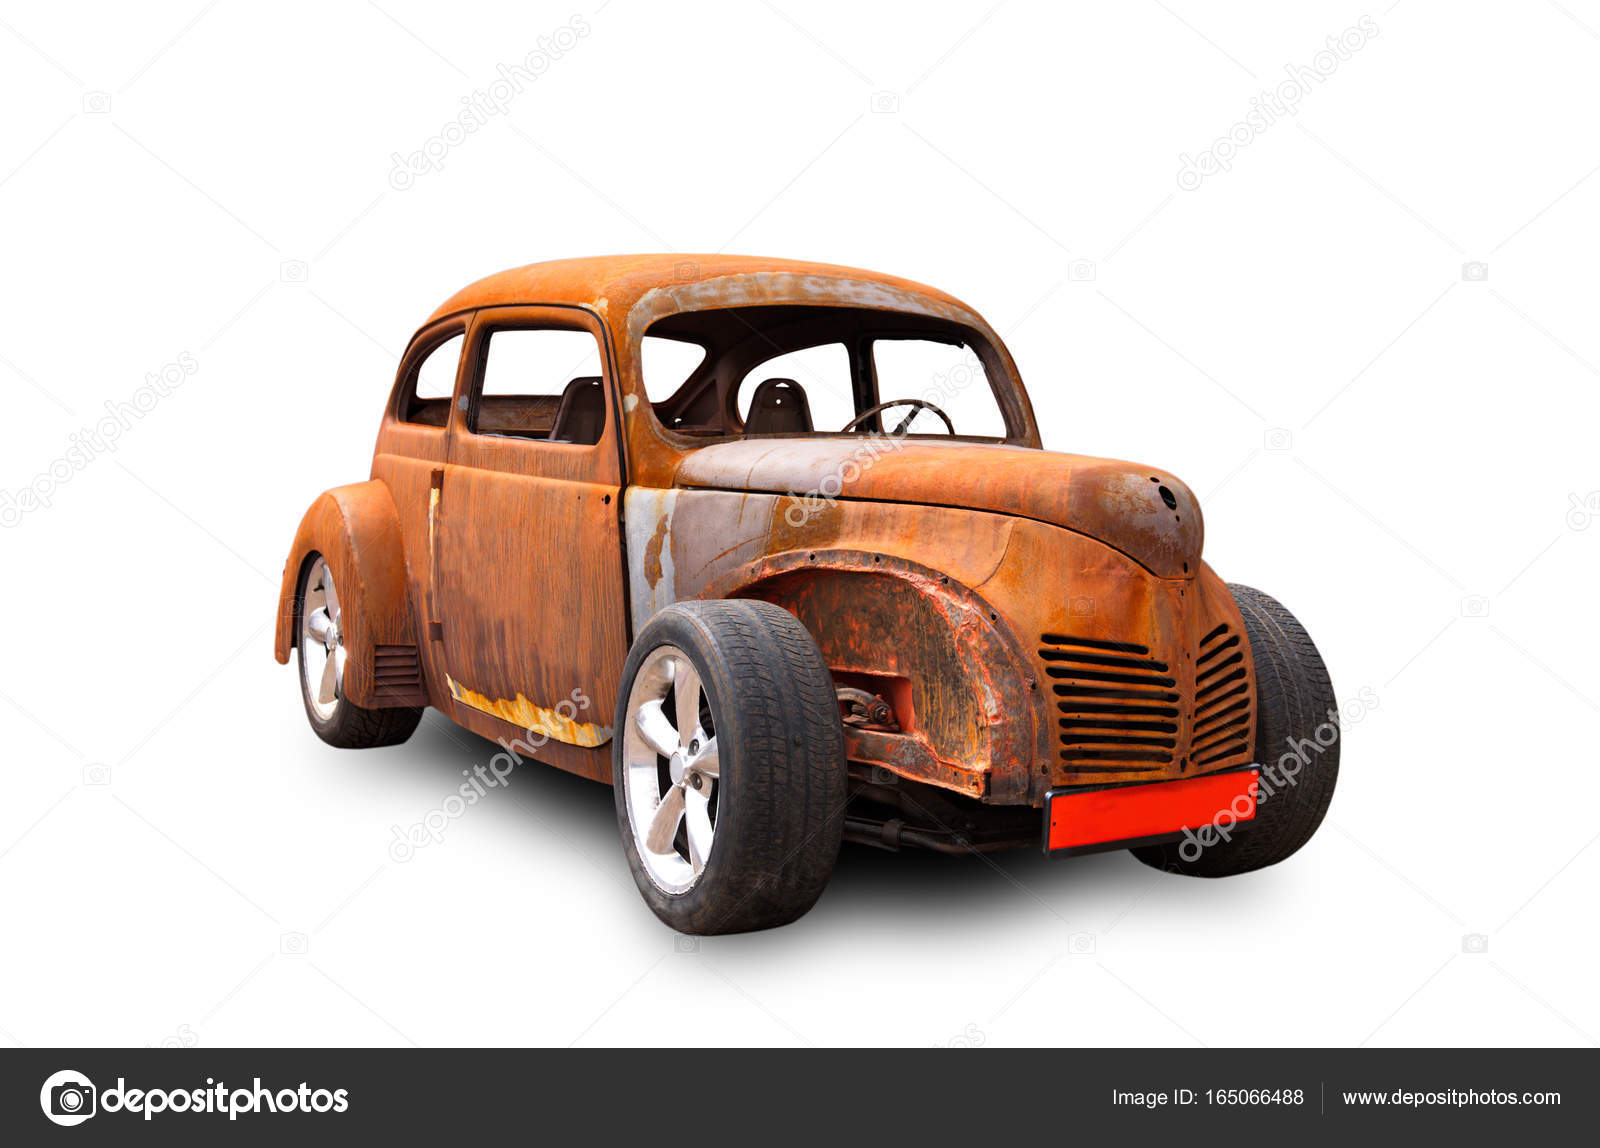 Rat-Look Style Car — Stock Photo © OlegMirabo #165066488